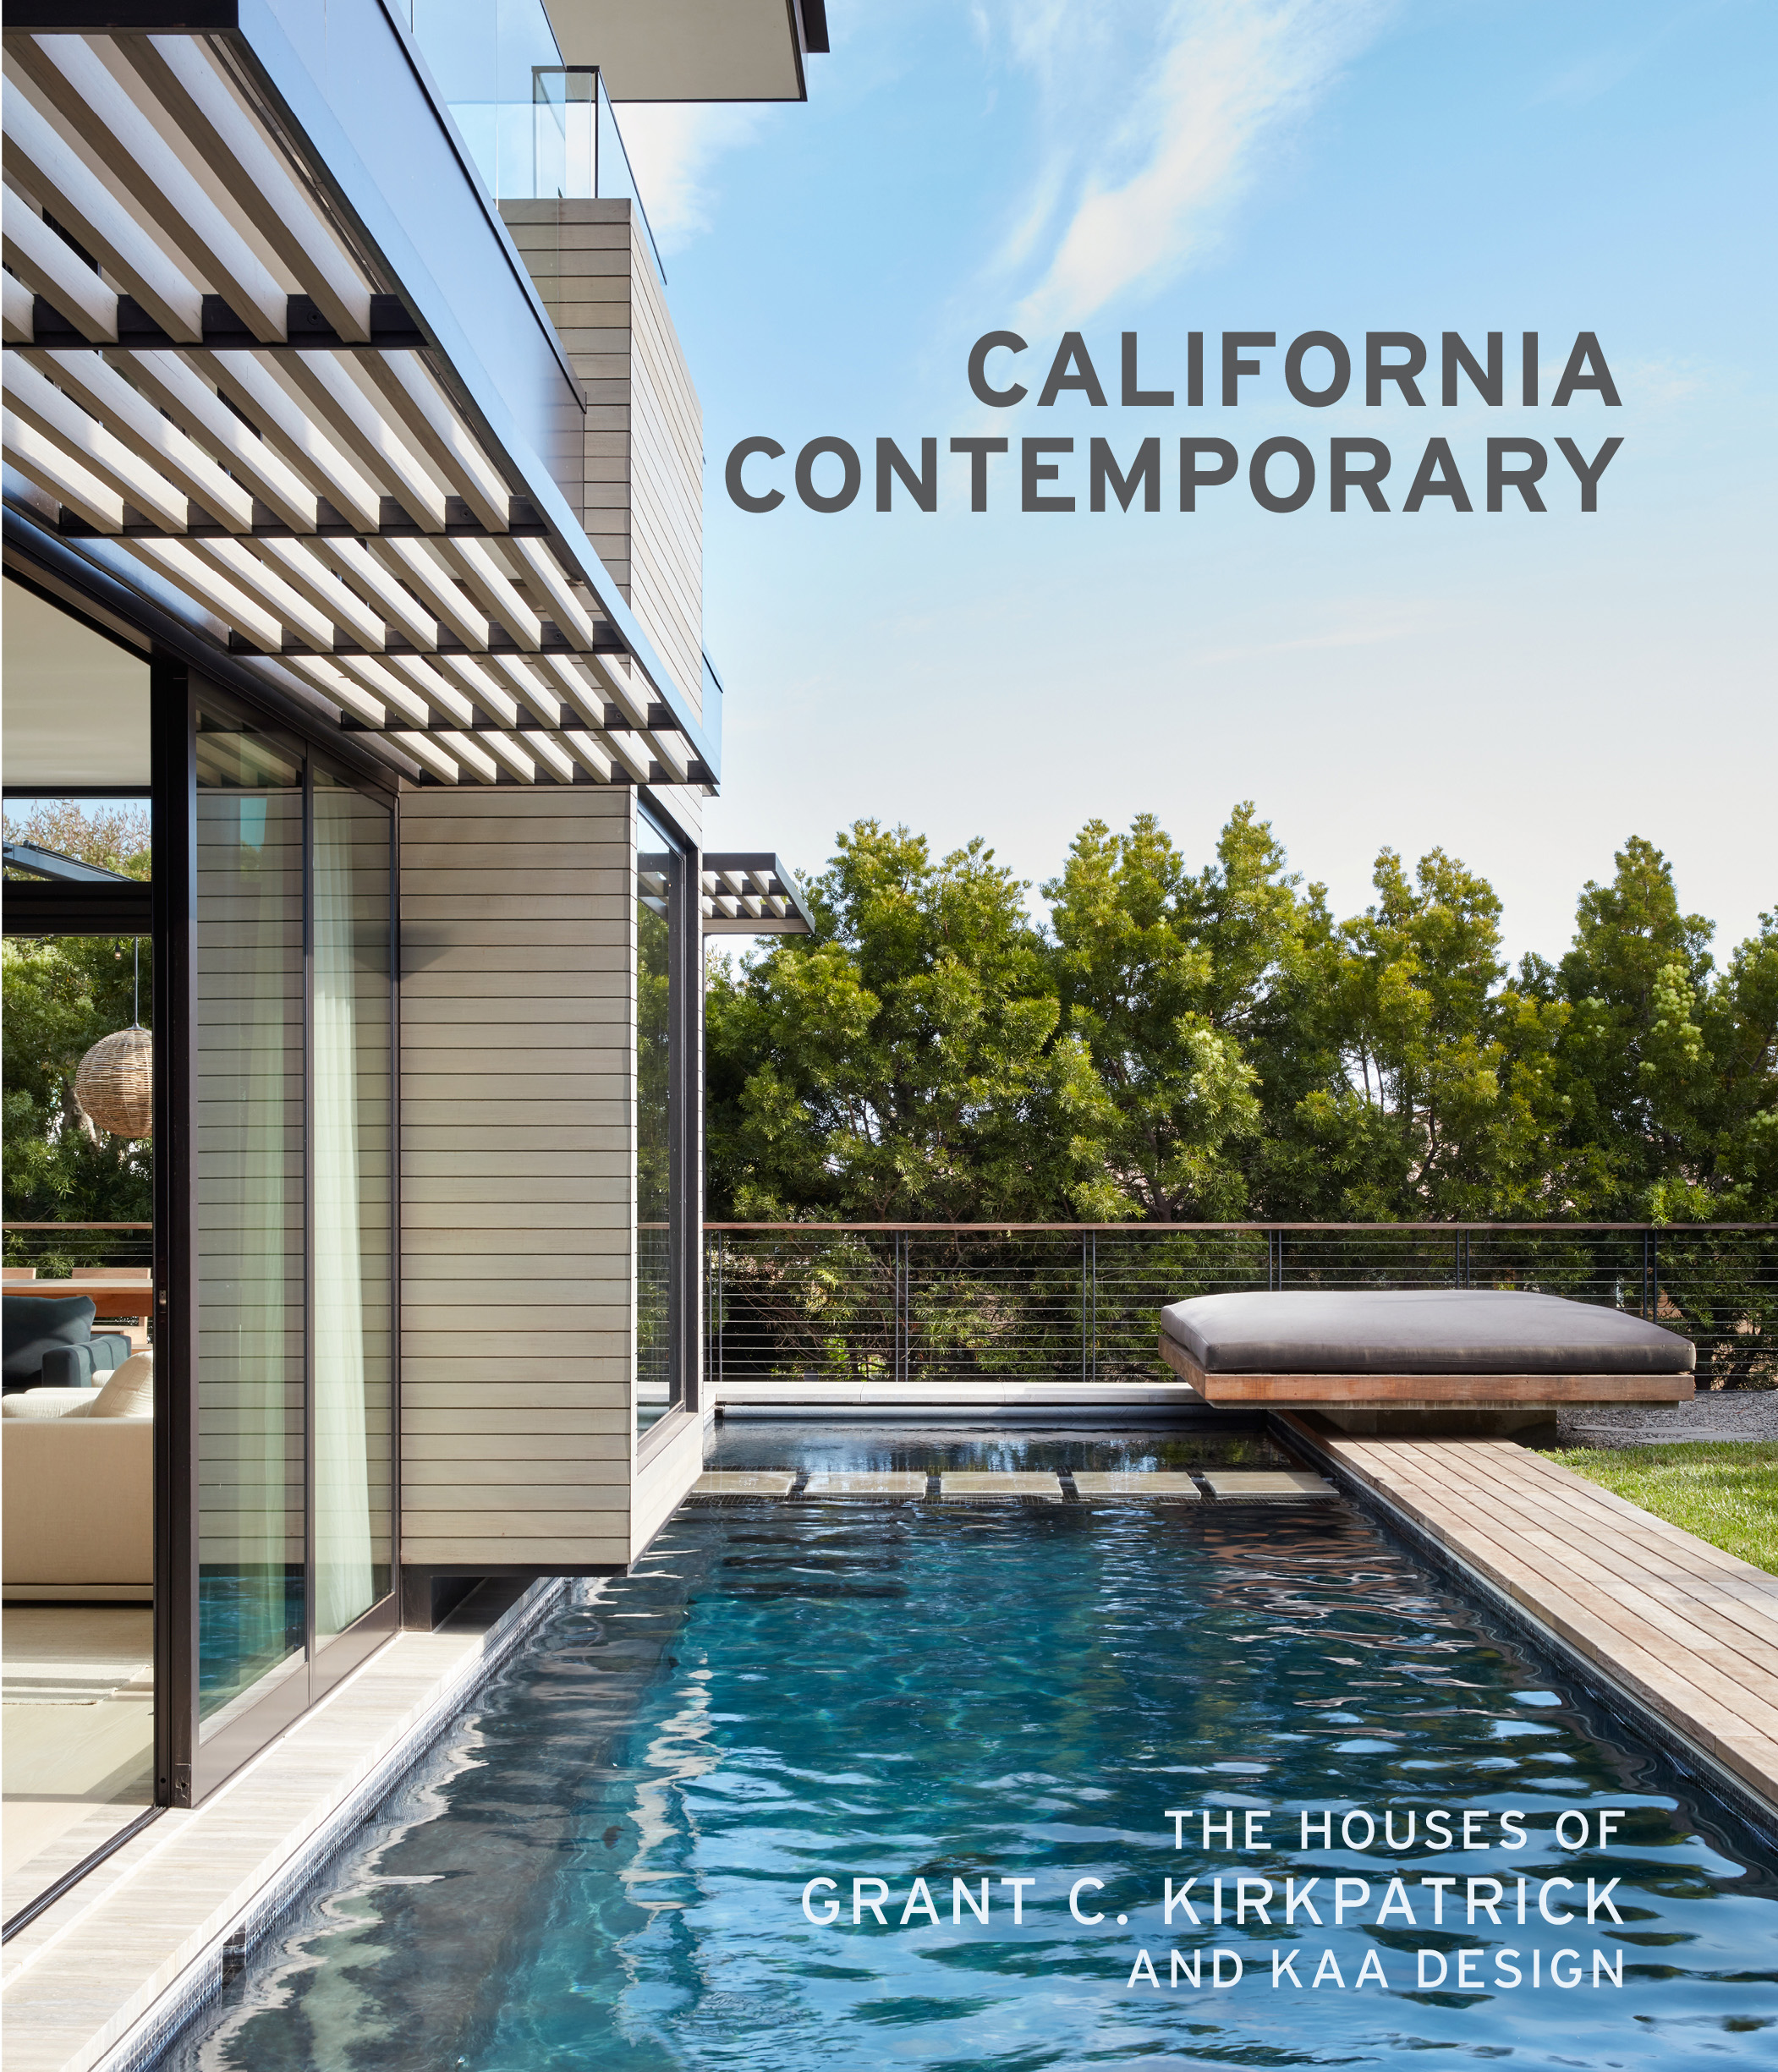 CALIFORNIA CONTEMPORARY COVER FIN.jpg